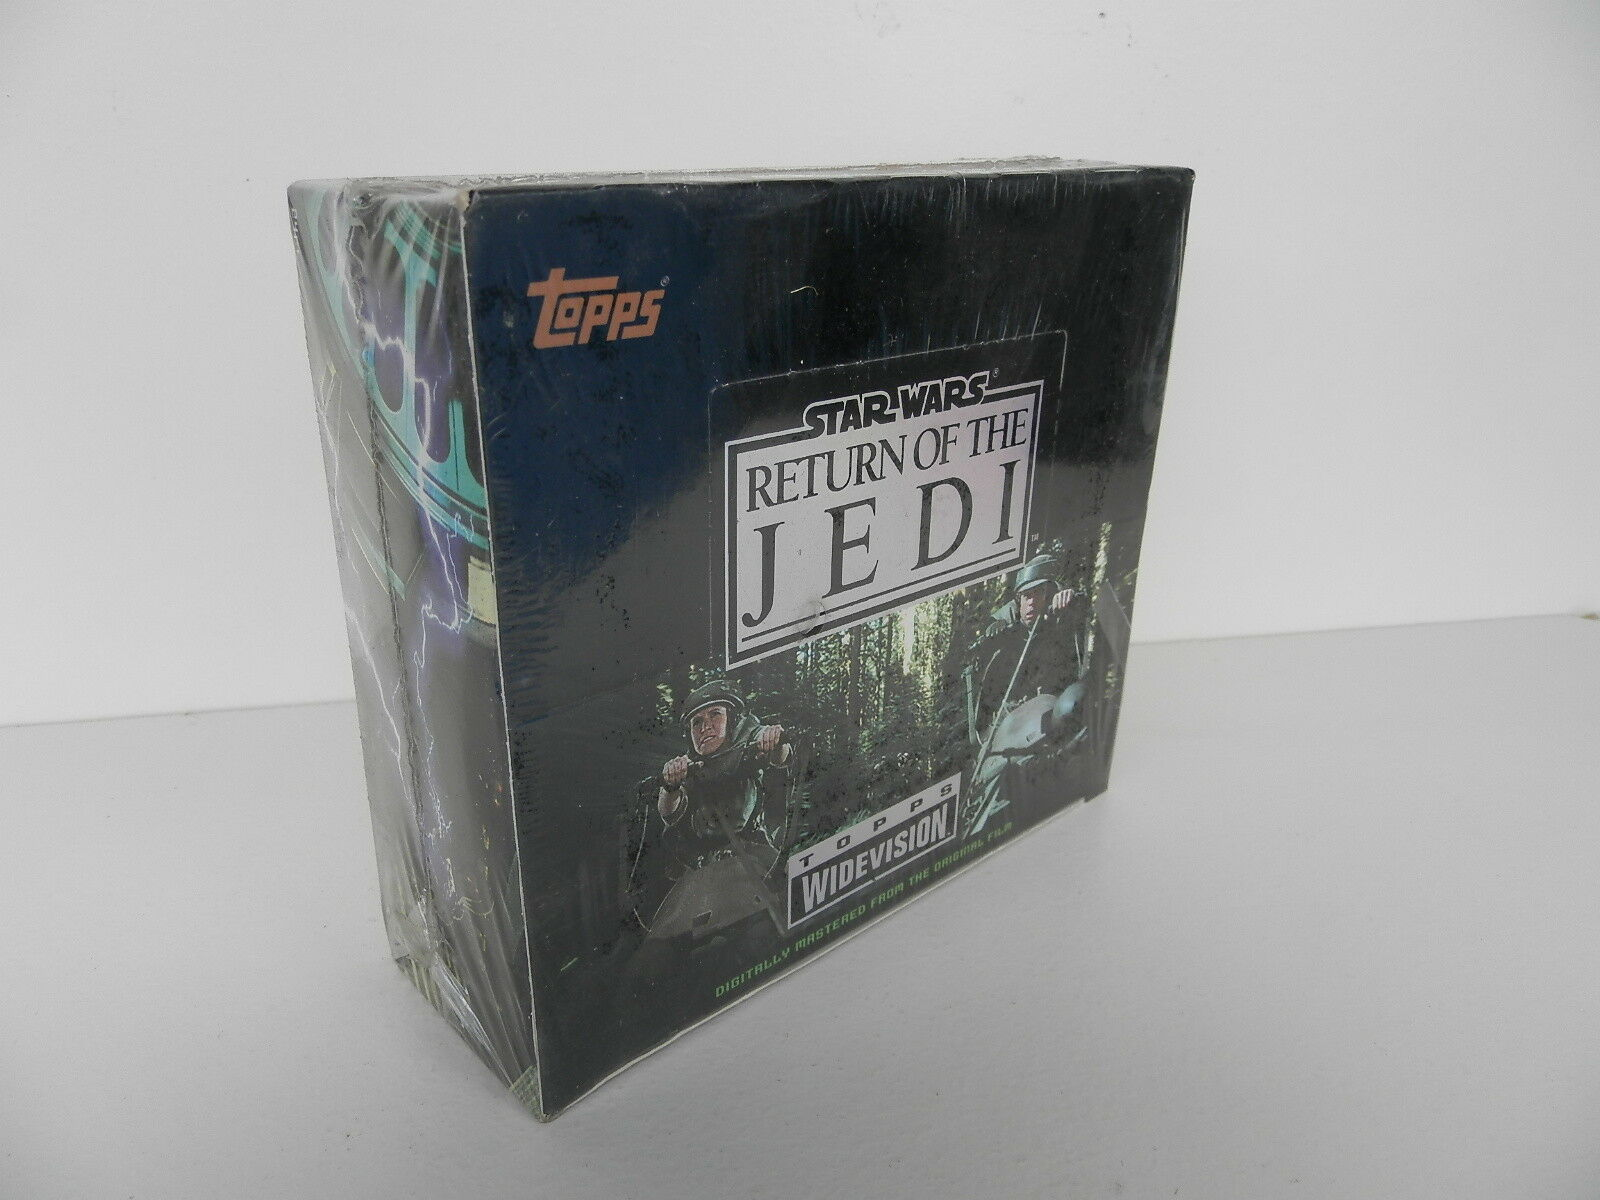 STAR WARS  RÜCKKEHR OF THE JEDI  WIDEVISION KARTEN - TOPPS 1995 SEALED BOX